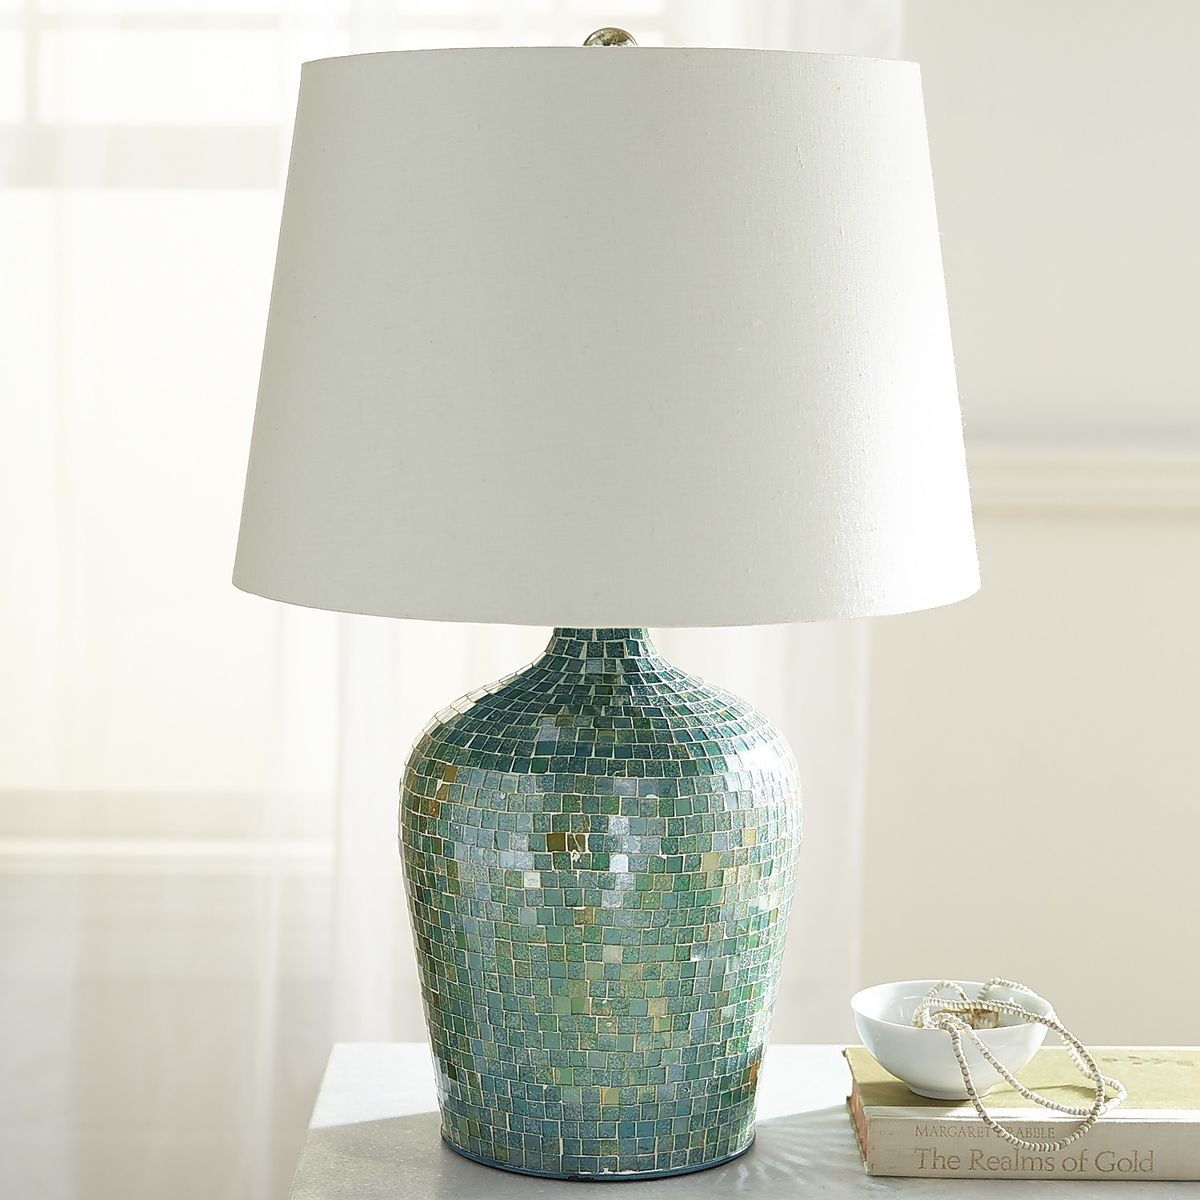 photos large glass sale everything set small turquoise ofrquoise table picture collection claudette of oceans lamps lamp mosaic new design size